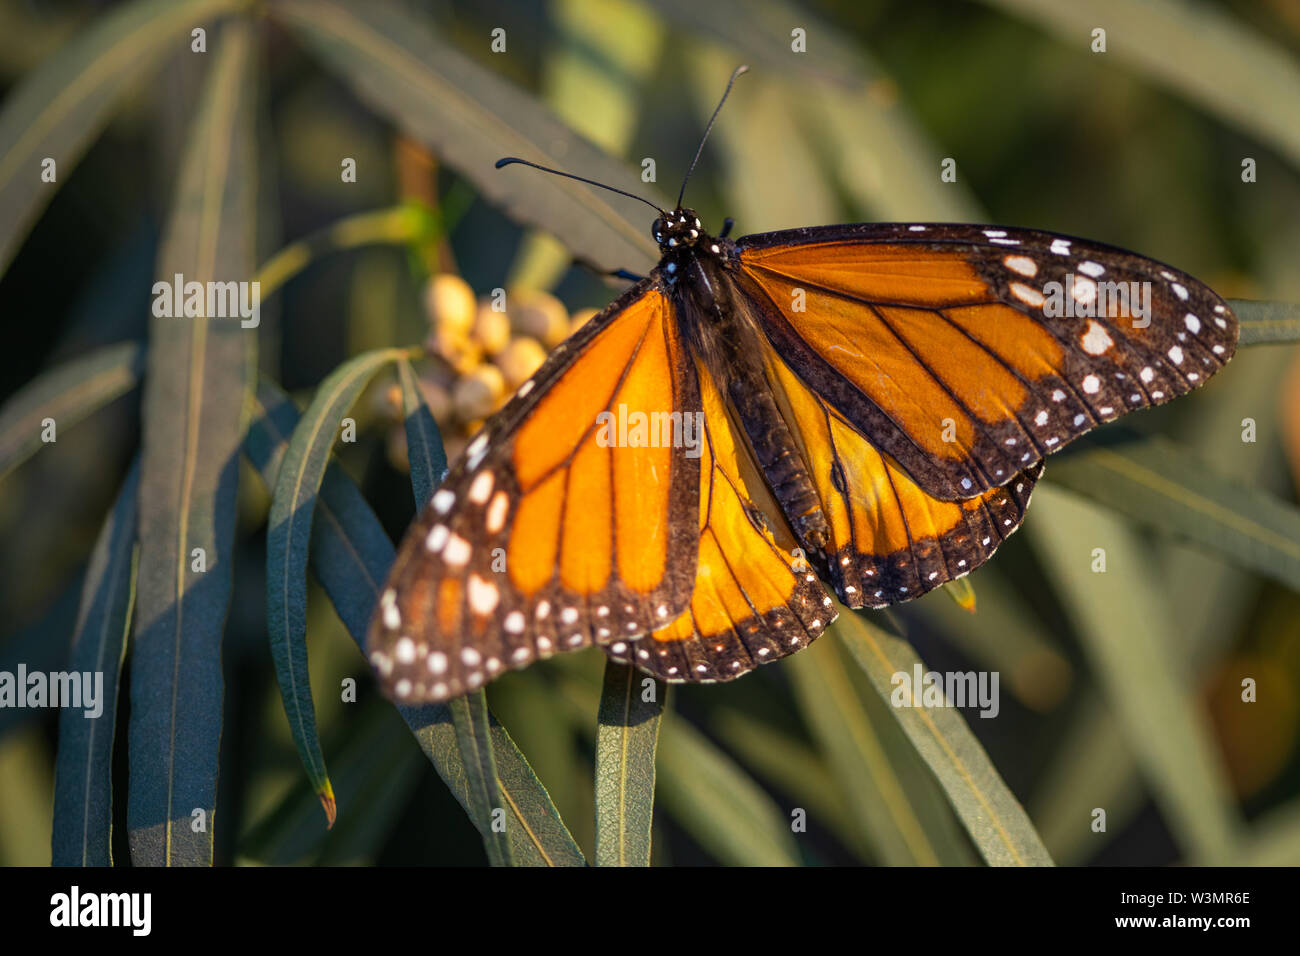 Beautiful Monarch Butterfly Resting On Plant. - Stock Image